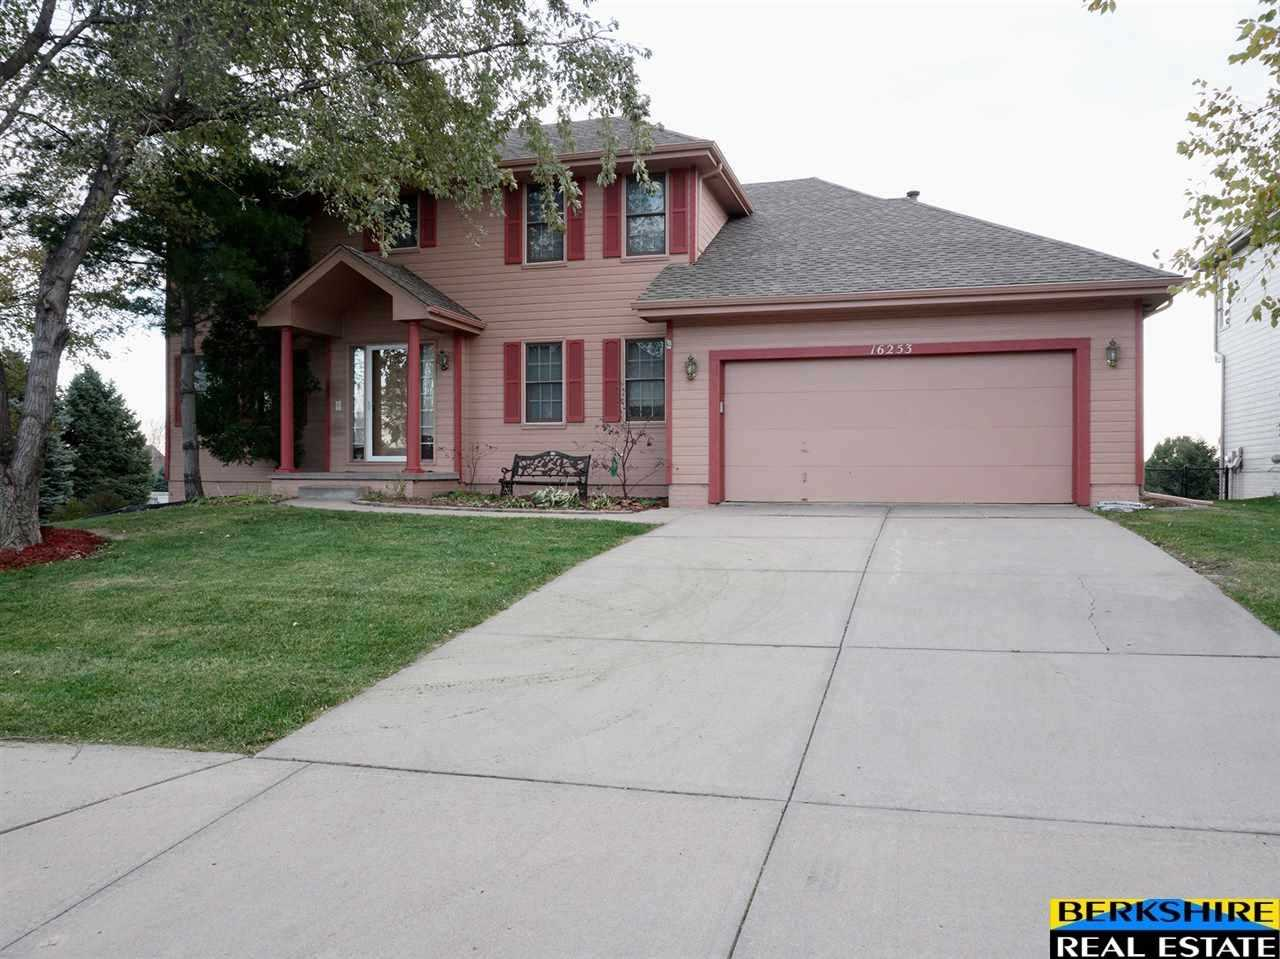 16253 Polk Omaha, NE 68118 | MLS 21721373 Photo 1